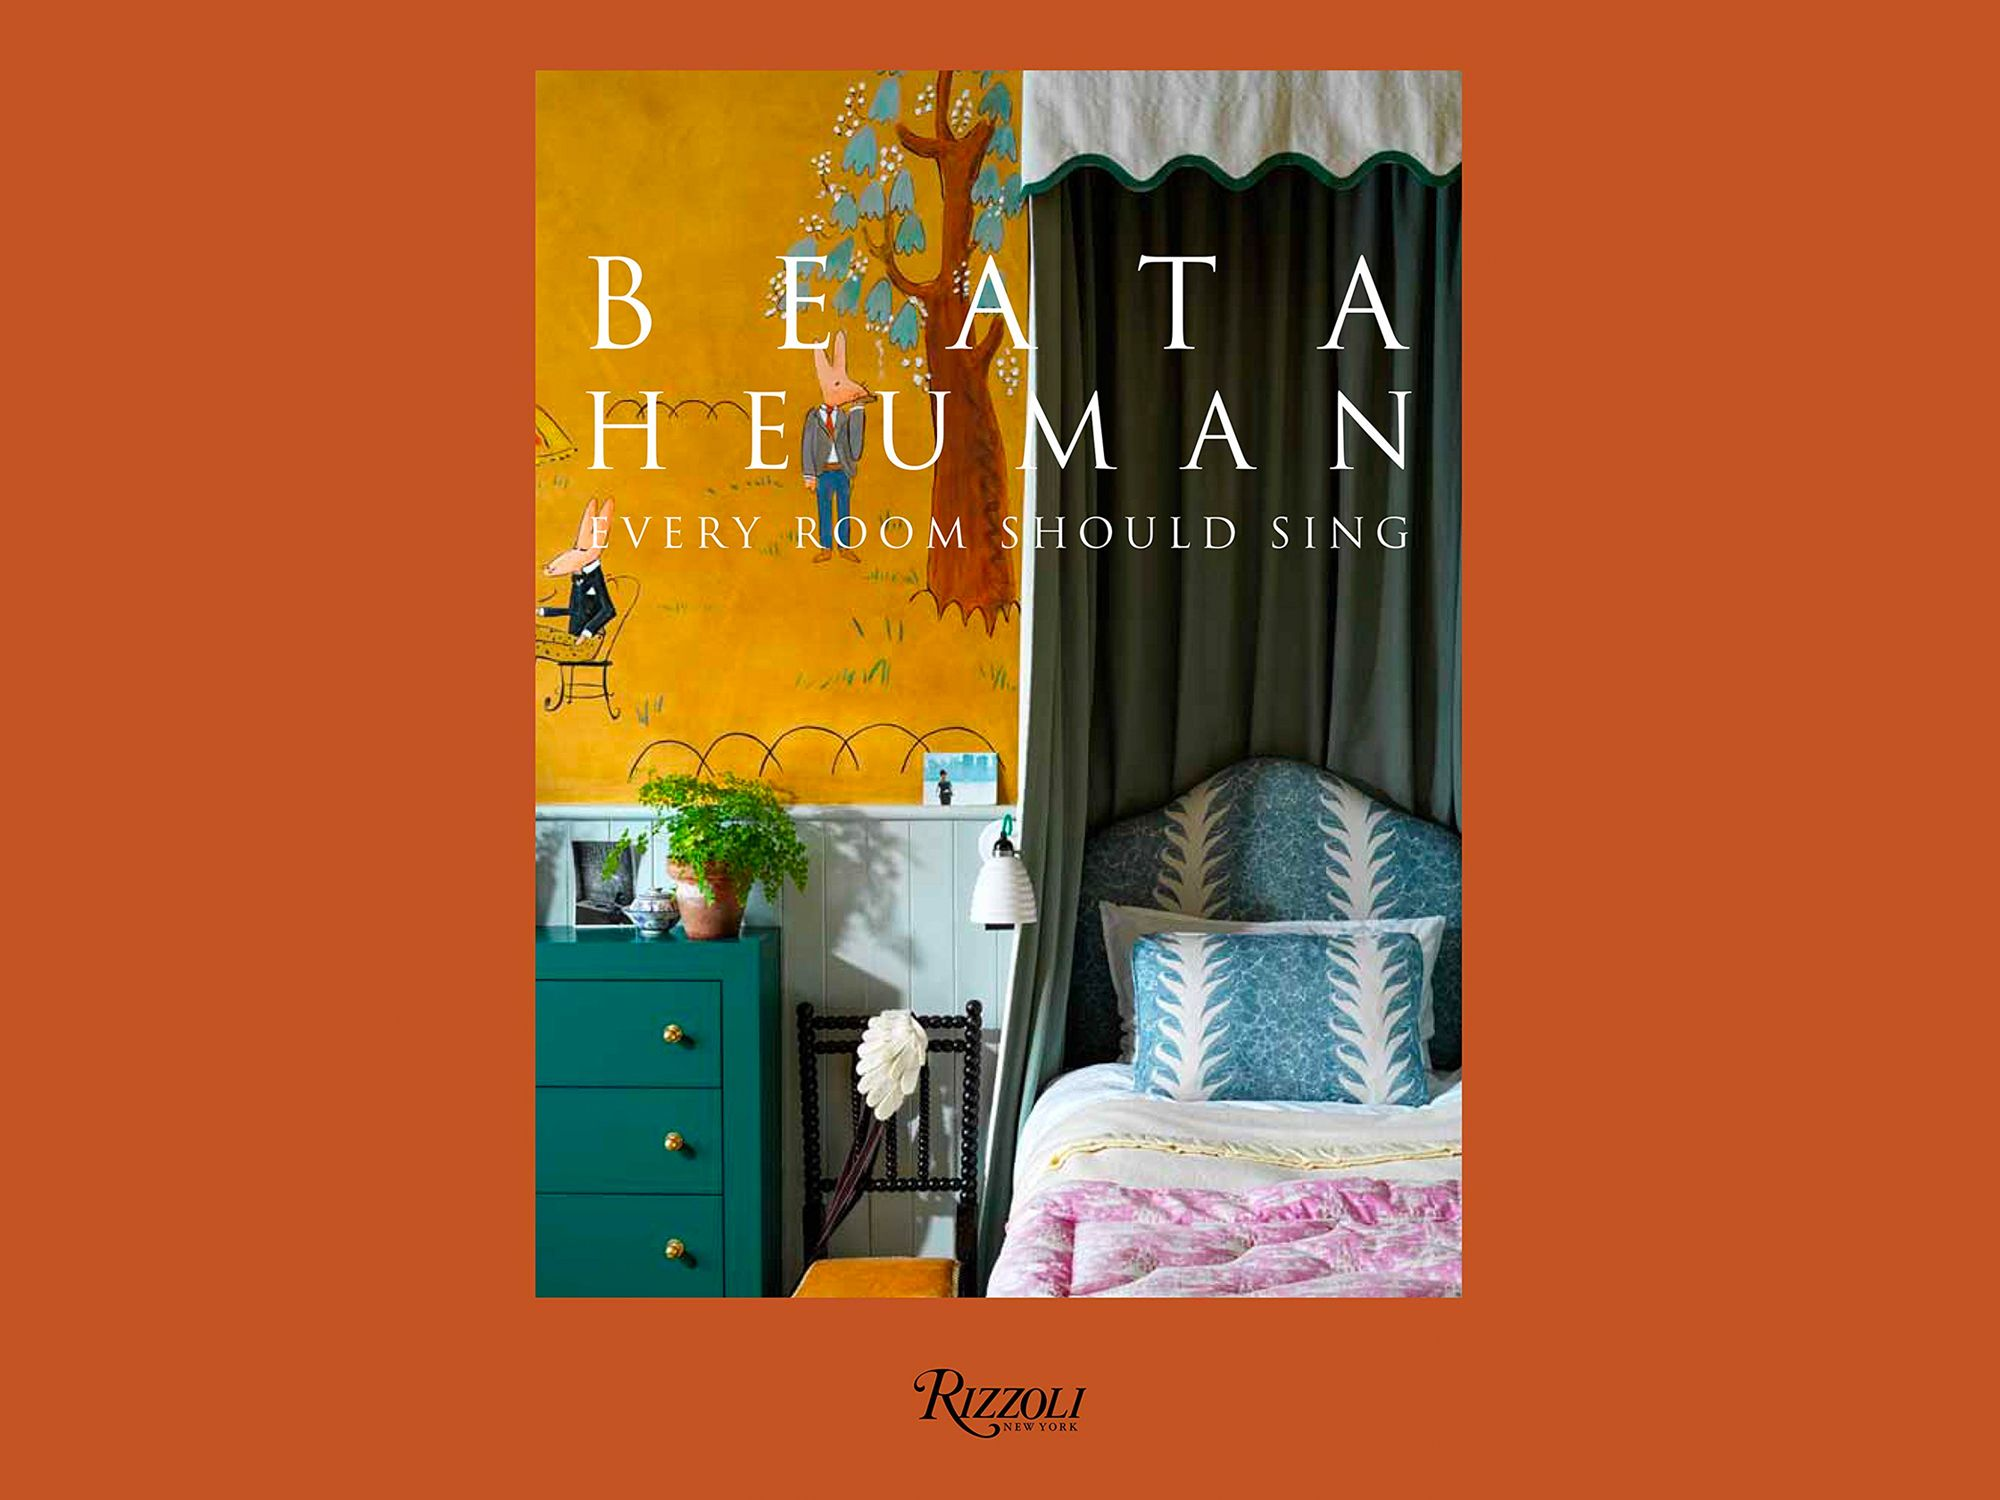 Every Room Should Sing by Beata Heuman, published by Rizzoli (Image: Rizzoli)